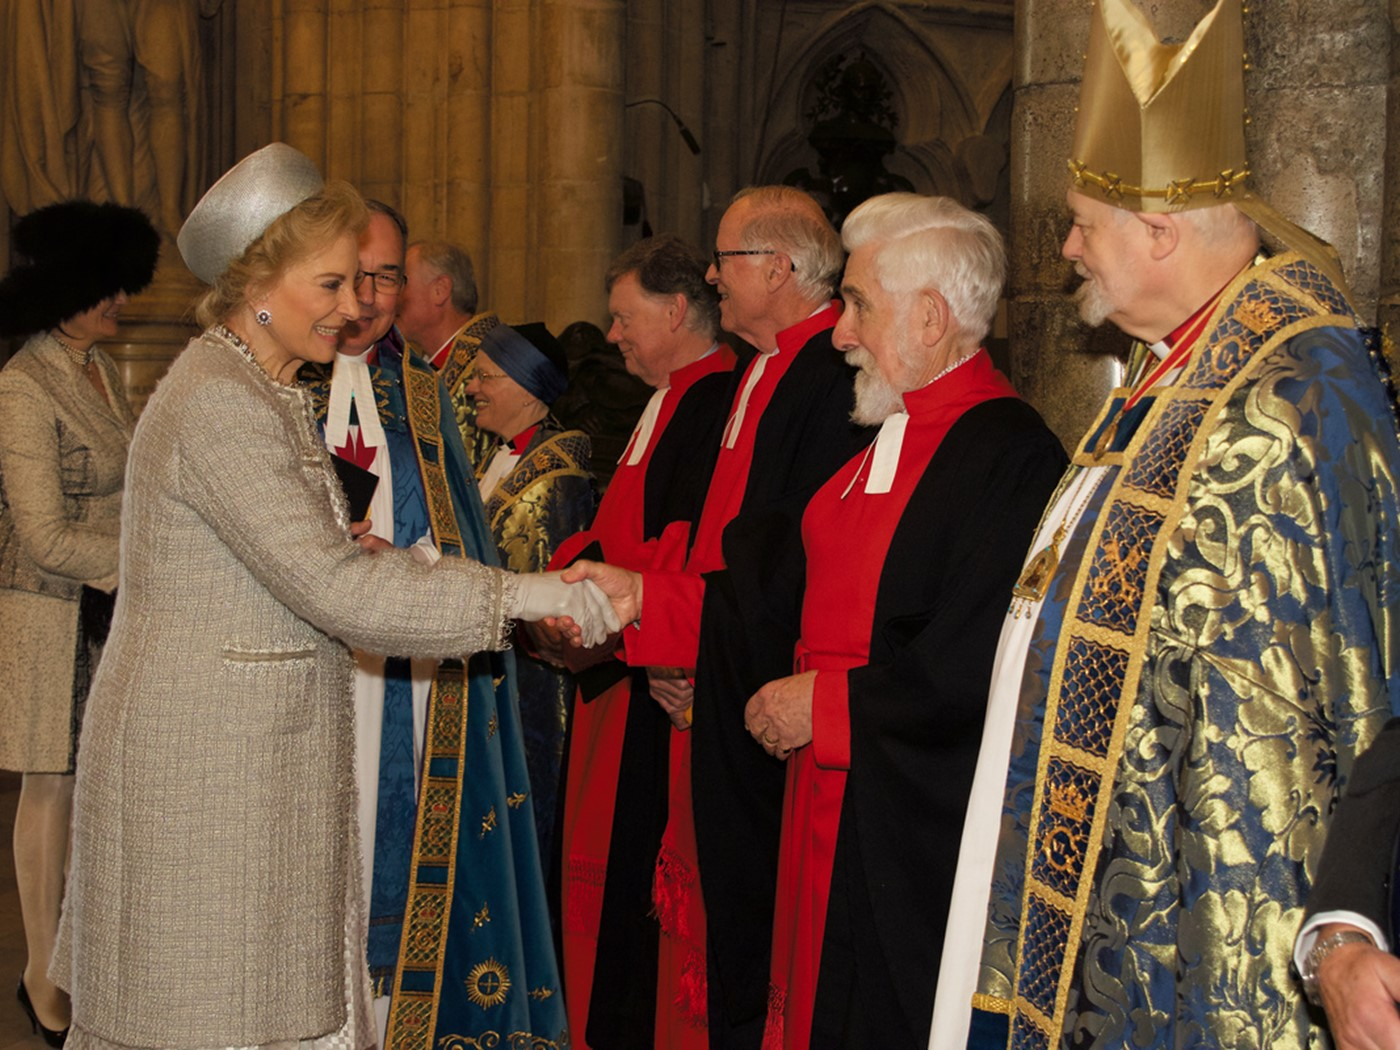 HRH The Duke of Kent and HRH Princess Michael of Kent attended a service to commemorate the 600th Anniversary of The Battle of Agincourt